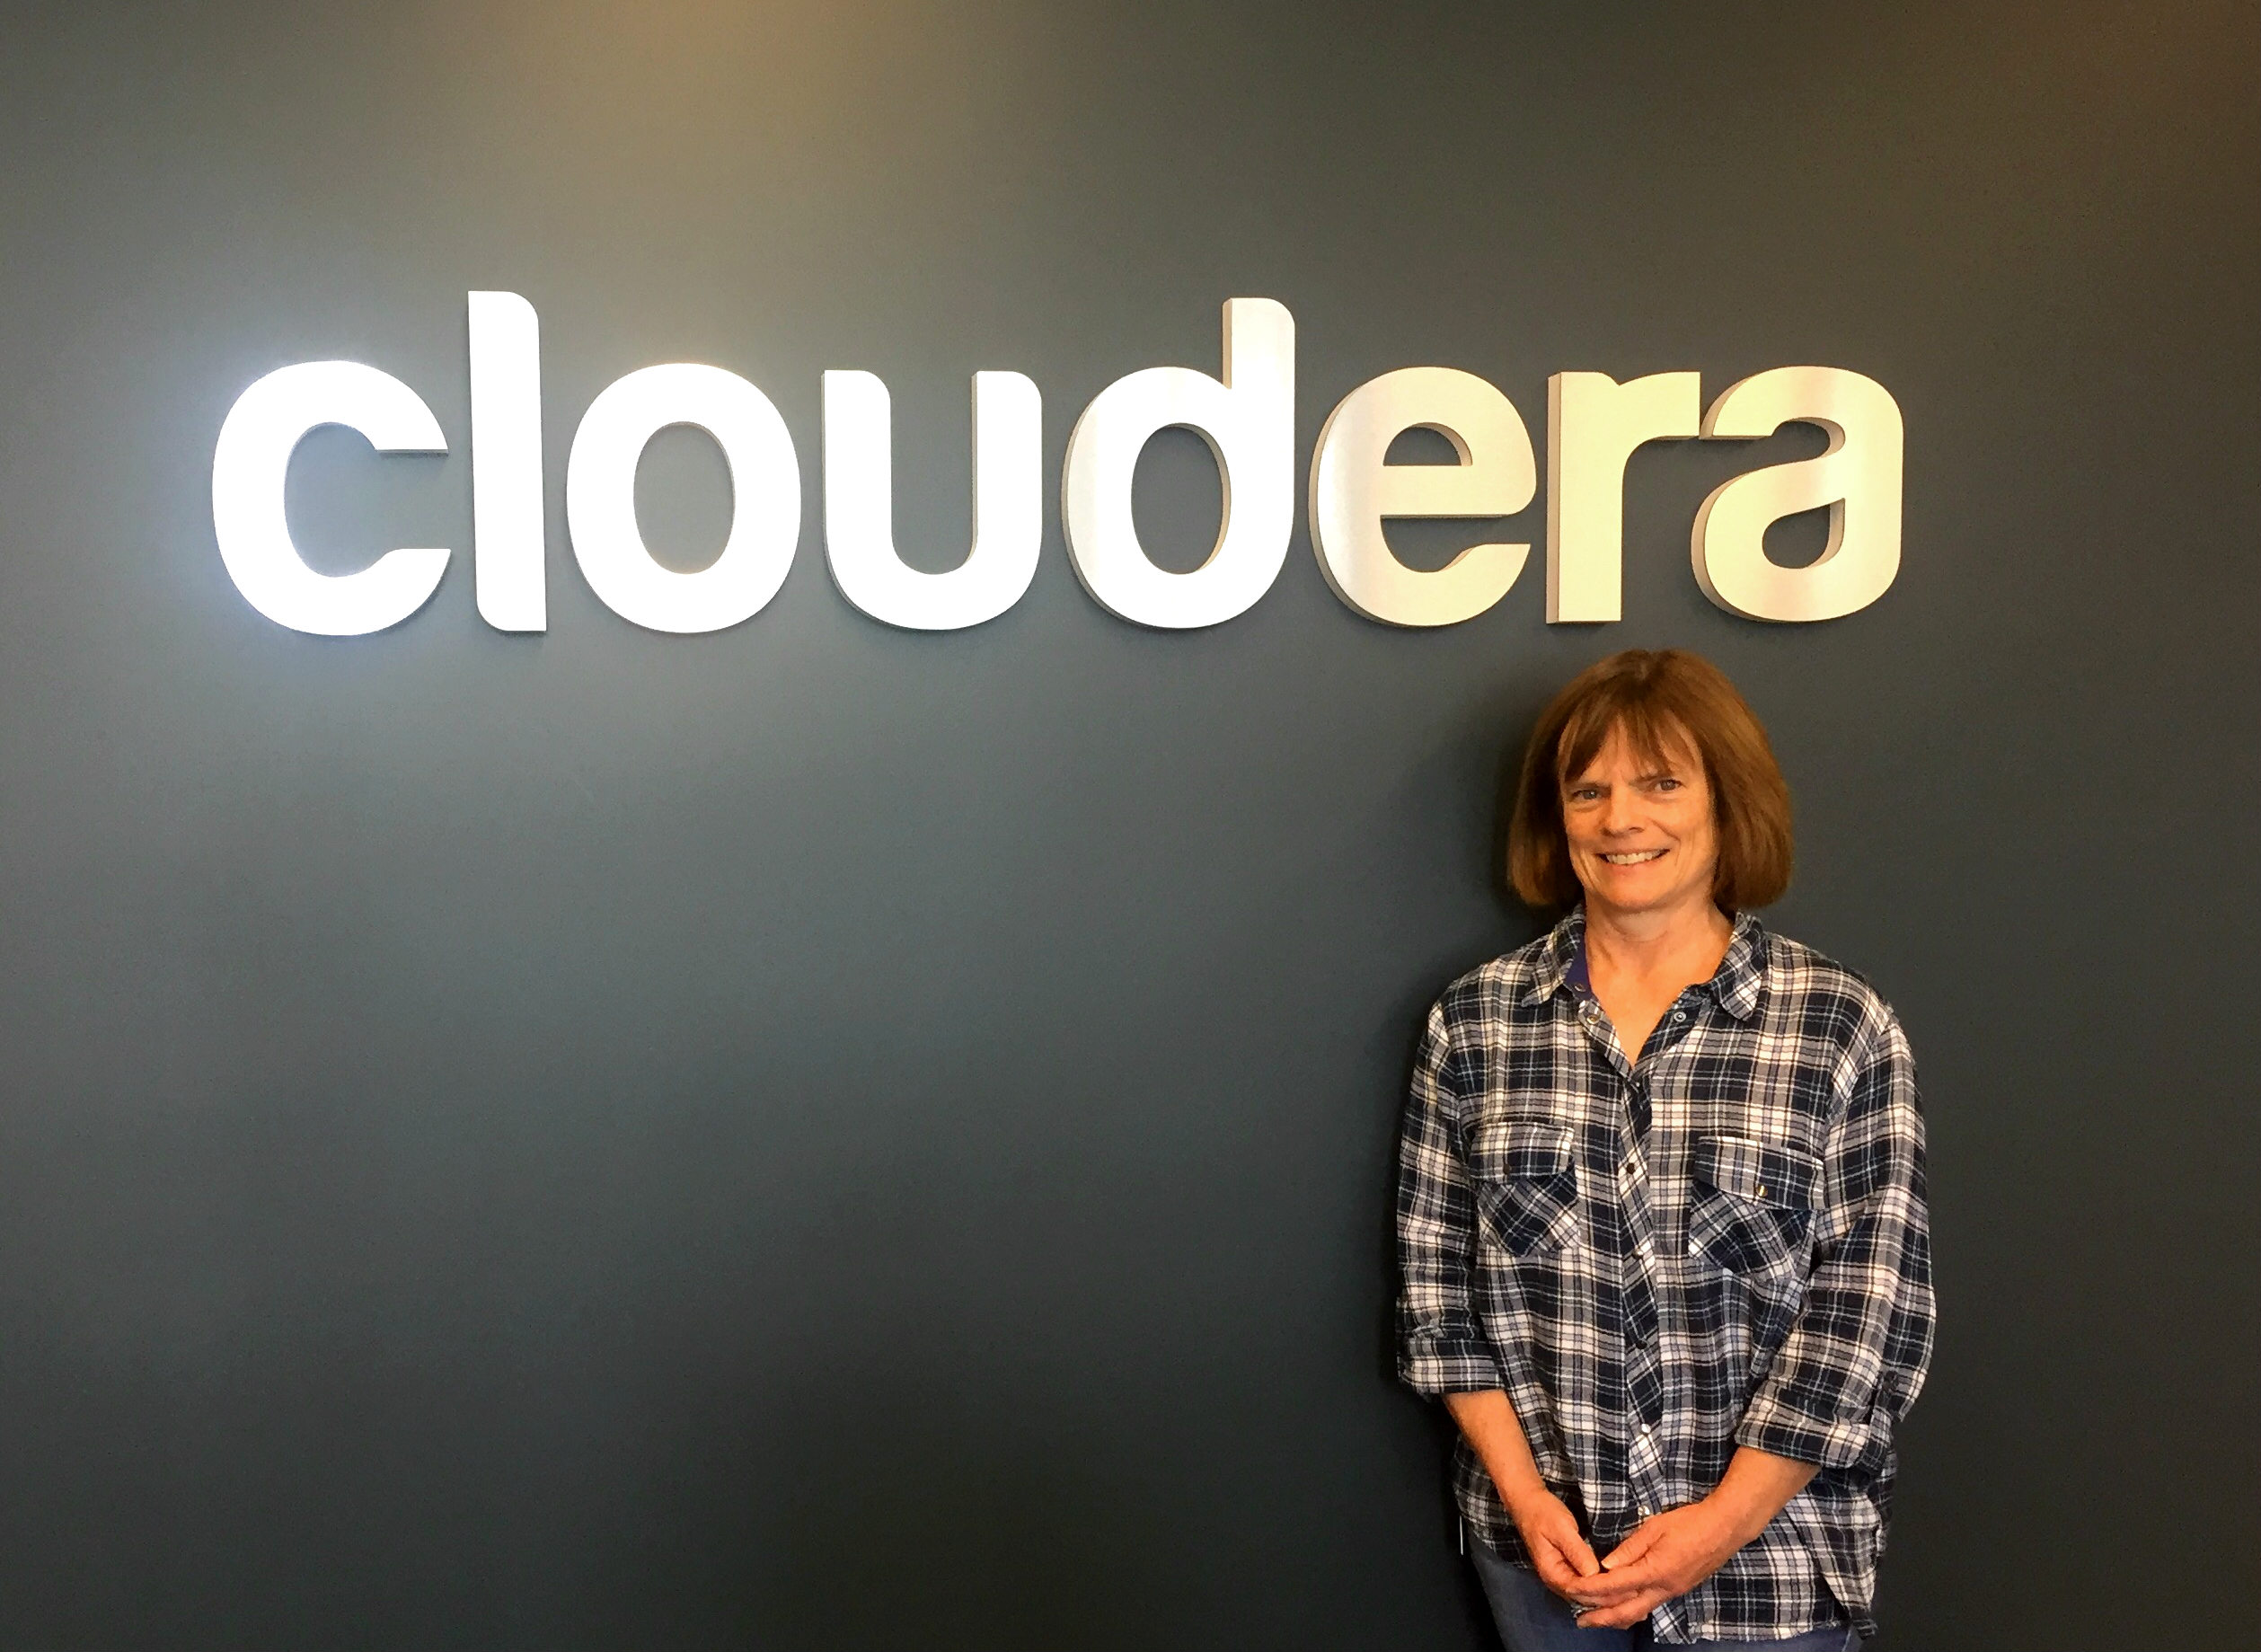 Anne Smith Cloudera